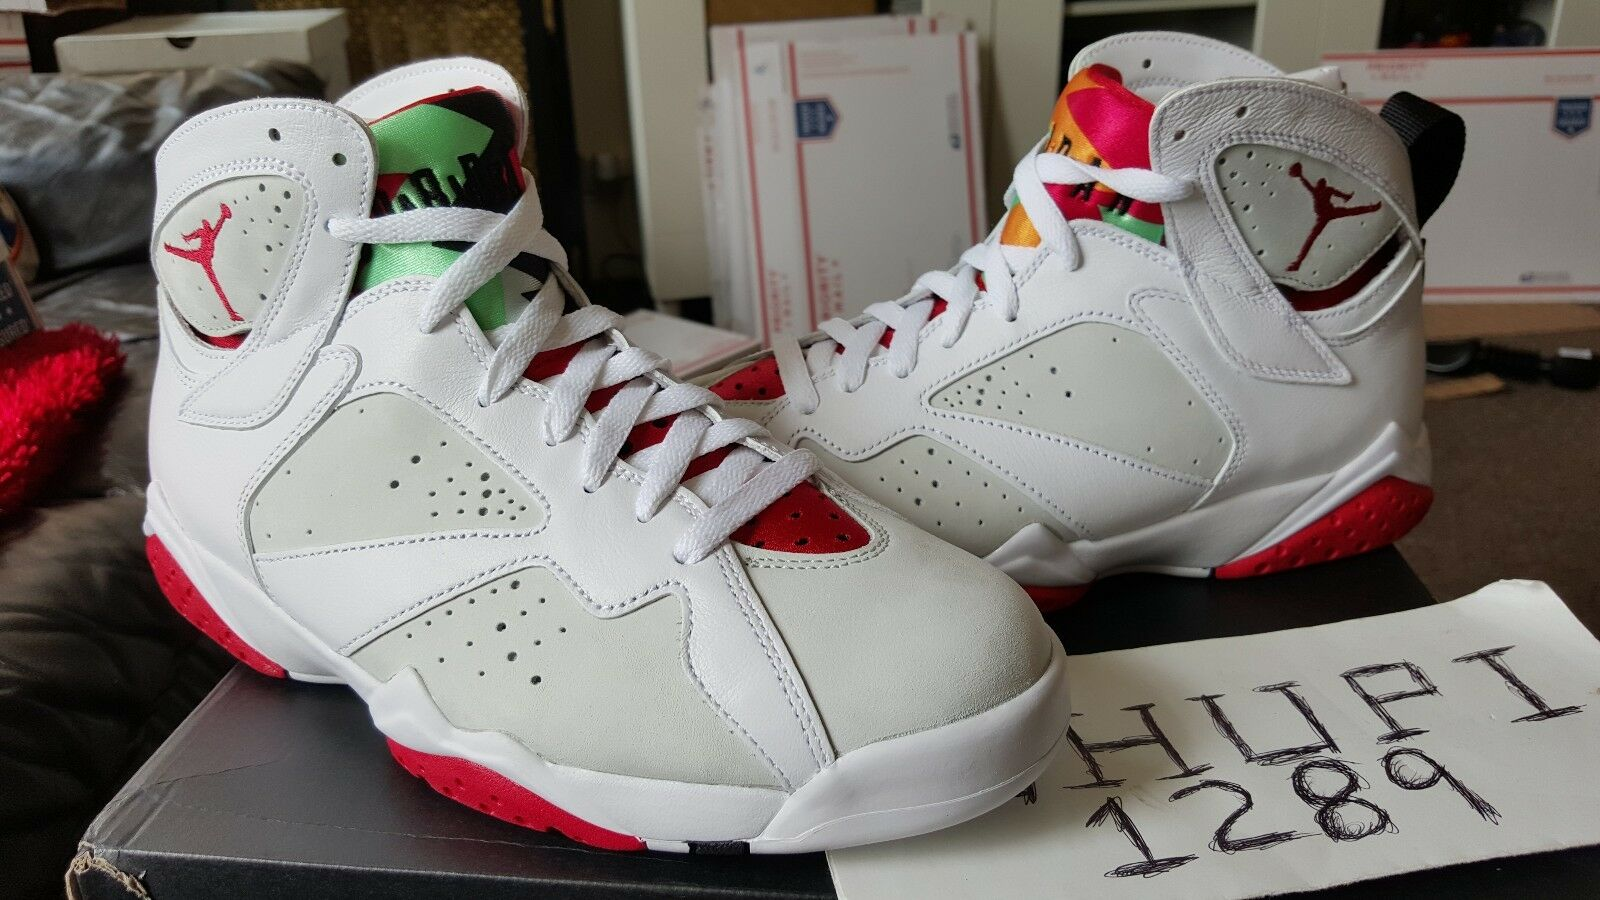 Nike Air Jordan Retro VII 7 Hare WB White True Red Bugs Bunny Silver 304775-125